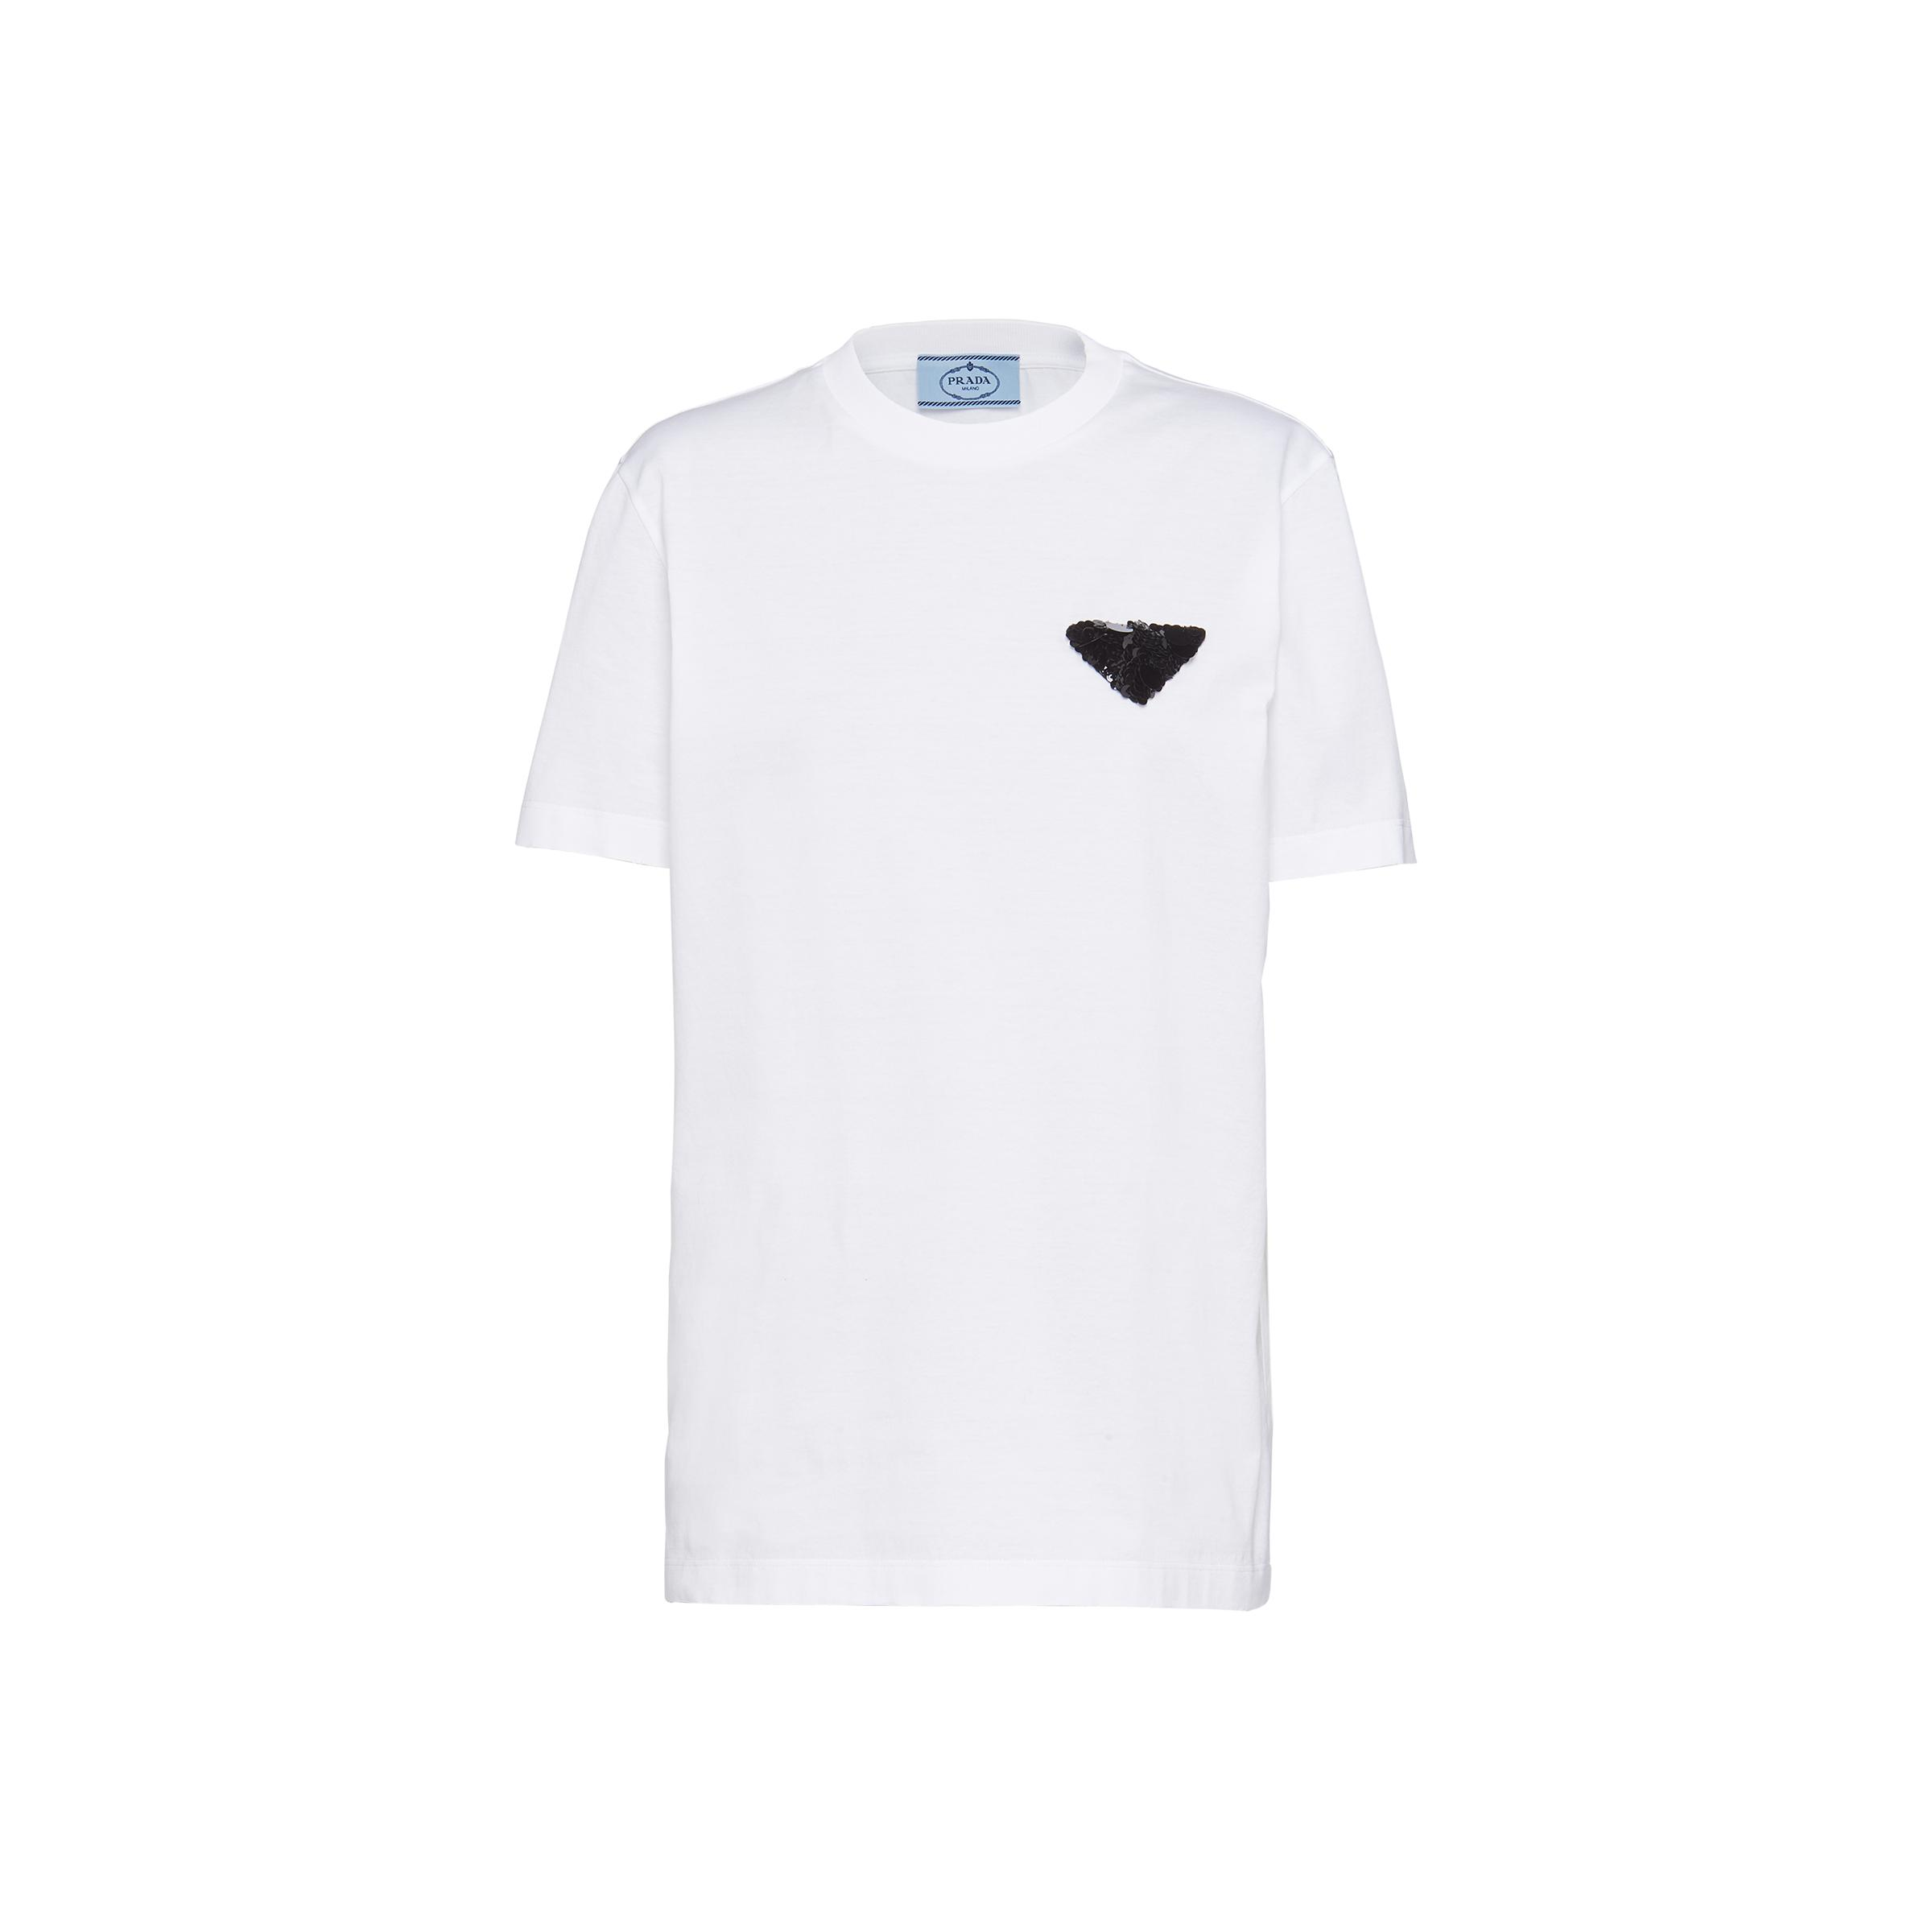 Embroidered Jersey T-shirt Women White/black